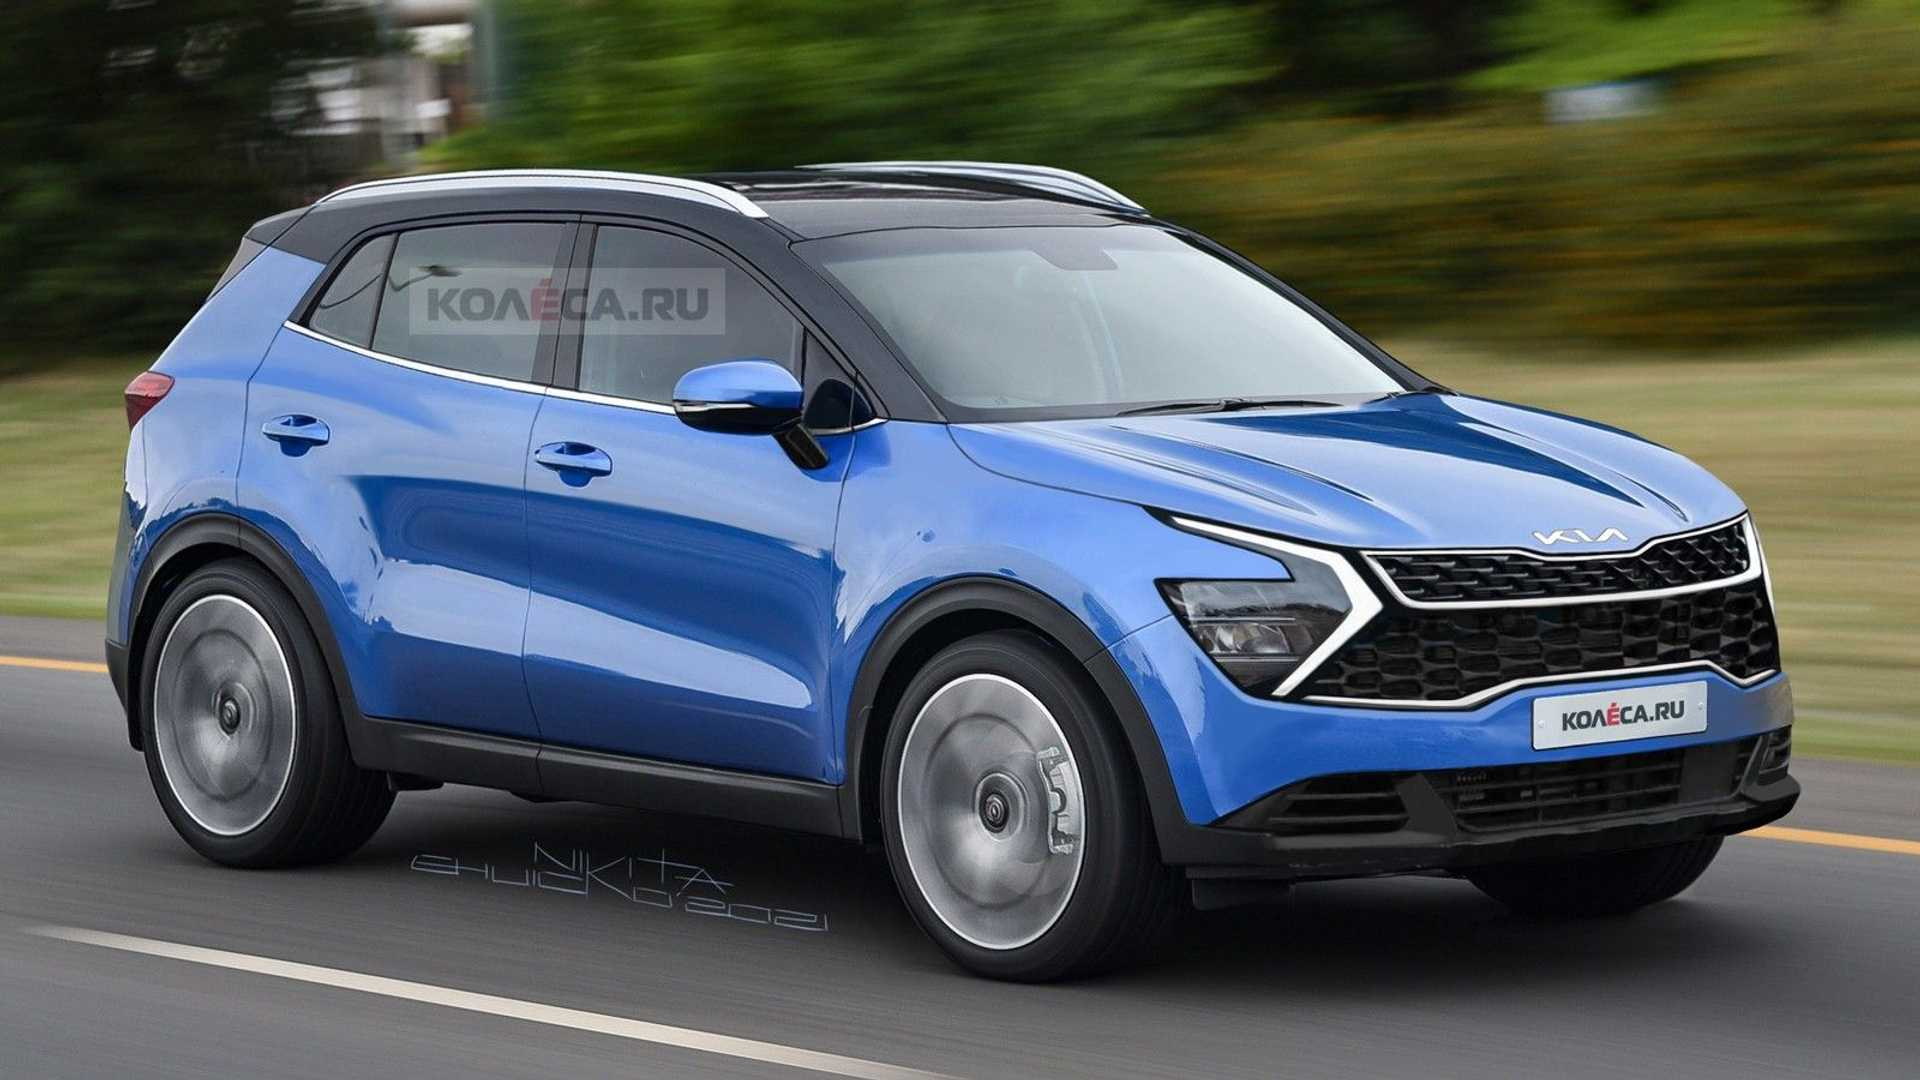 2022 Kia Sportage Speculatively Rendered After Latest Spy Shots